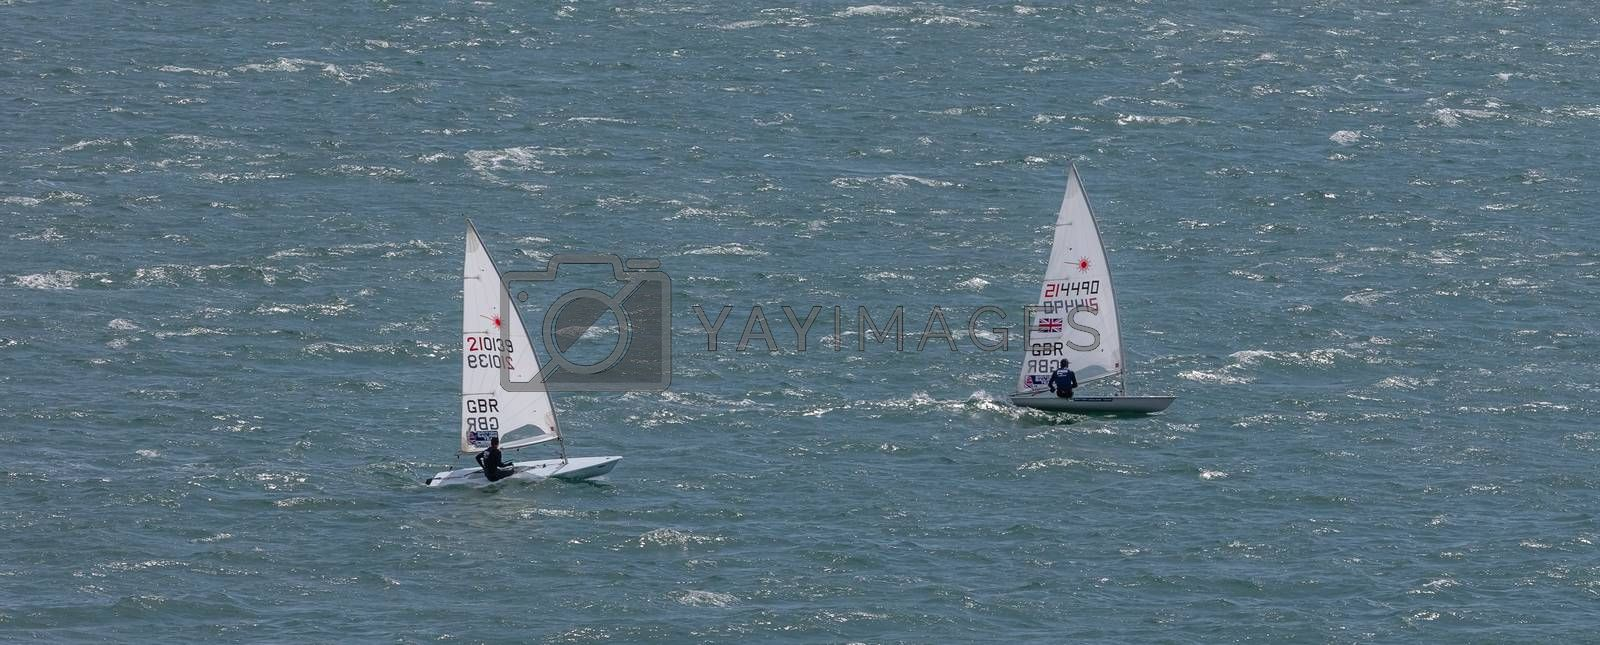 Portland harbour, United Kingdom - July 3, 2020: High Angle aerial panoramic shot of two laser class racing dinghies in Portland harbour.